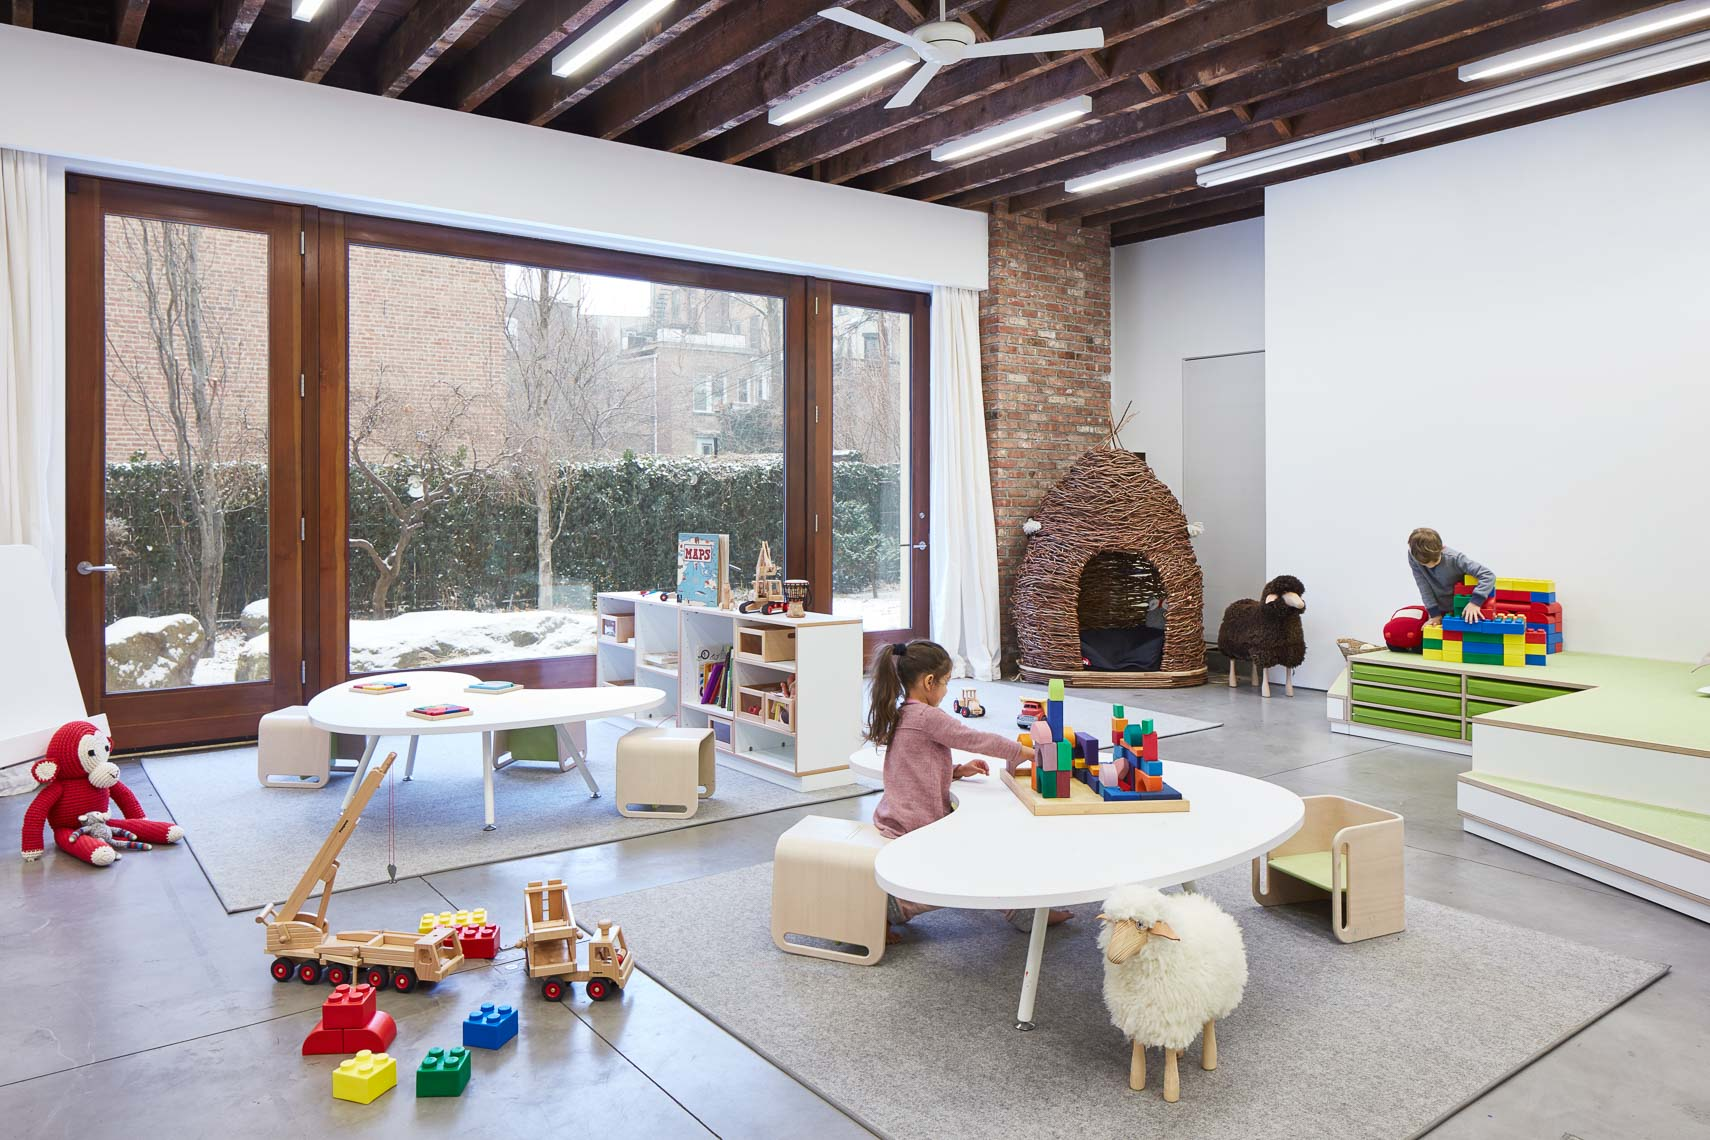 Modern interiors of a play area for young children